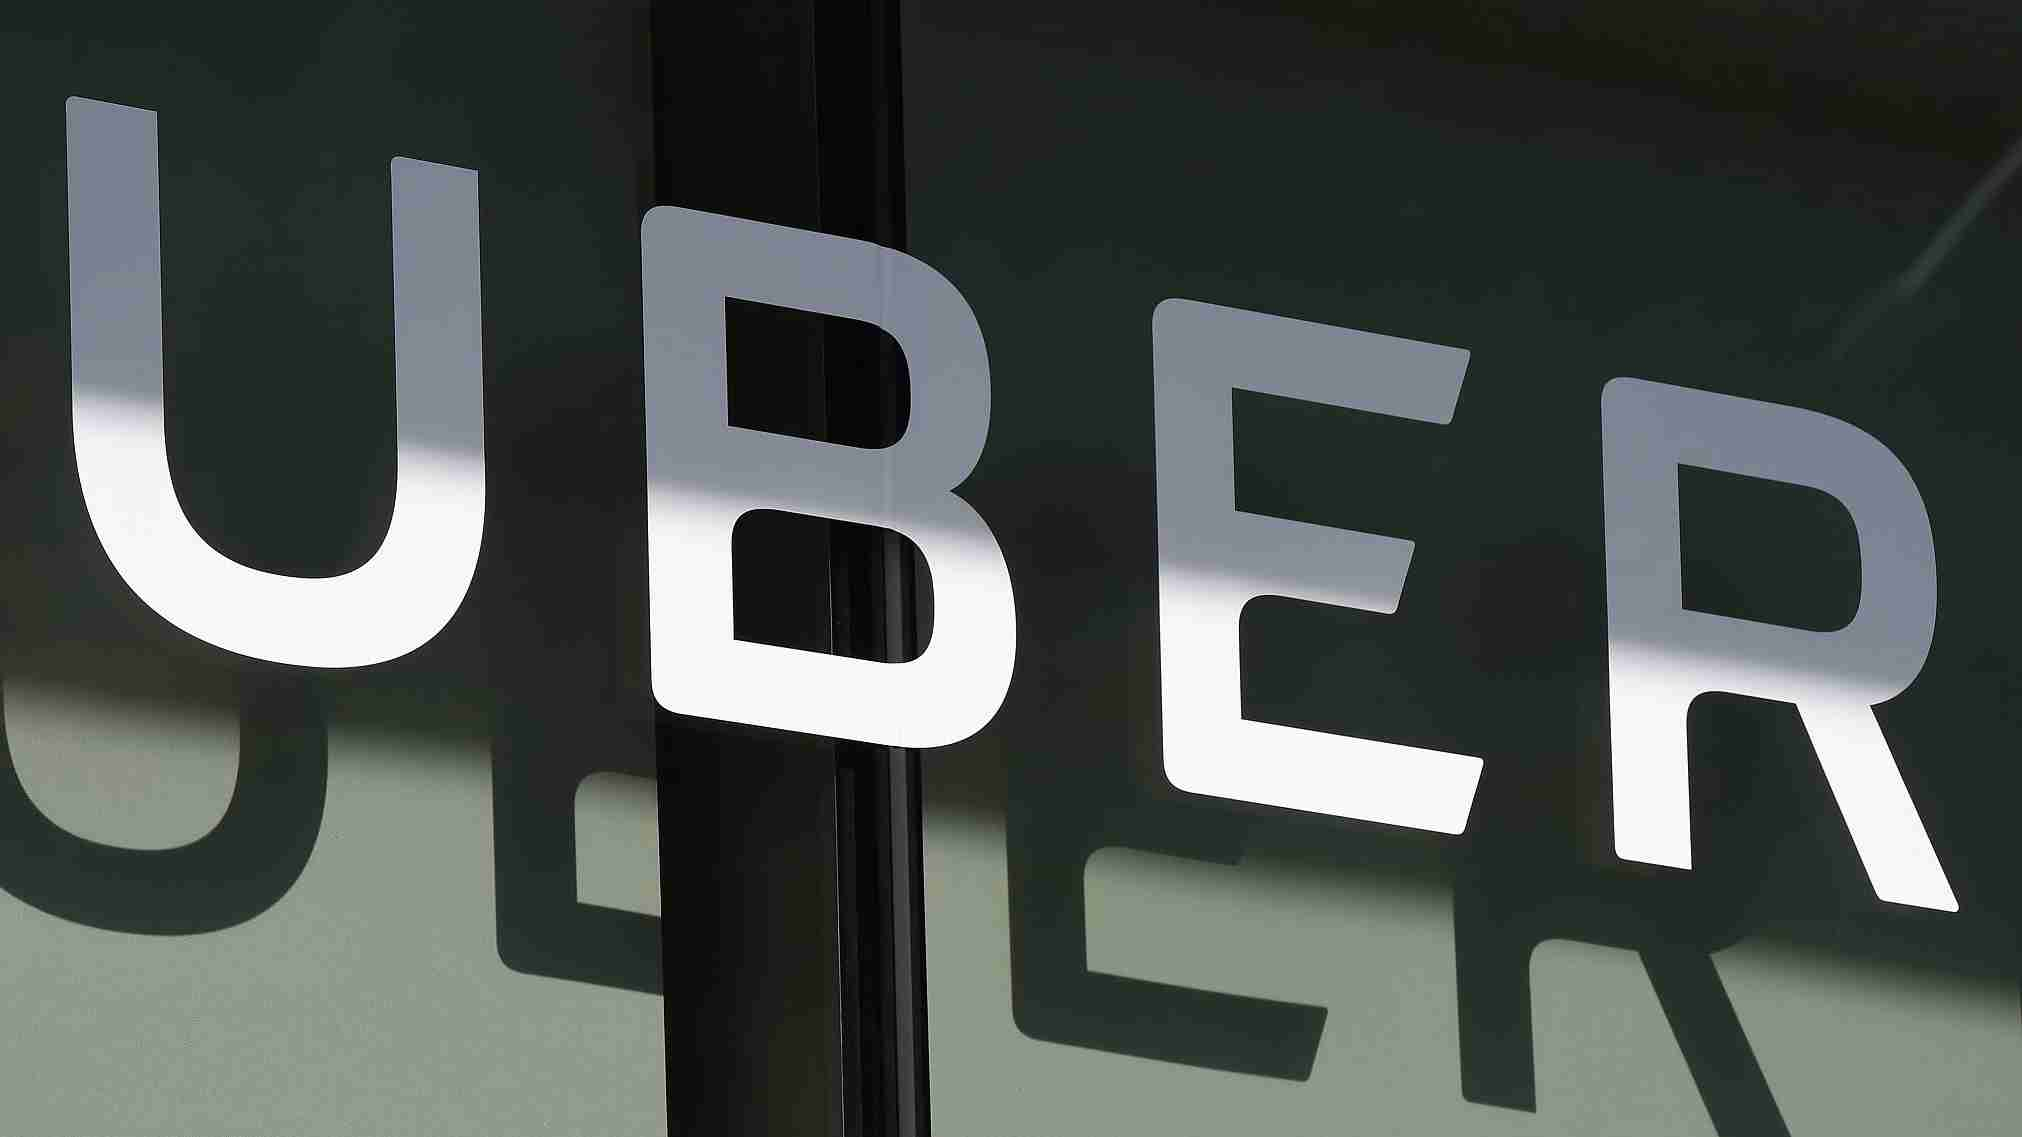 Following accidents, Dutch Uber lifts minimum driver age